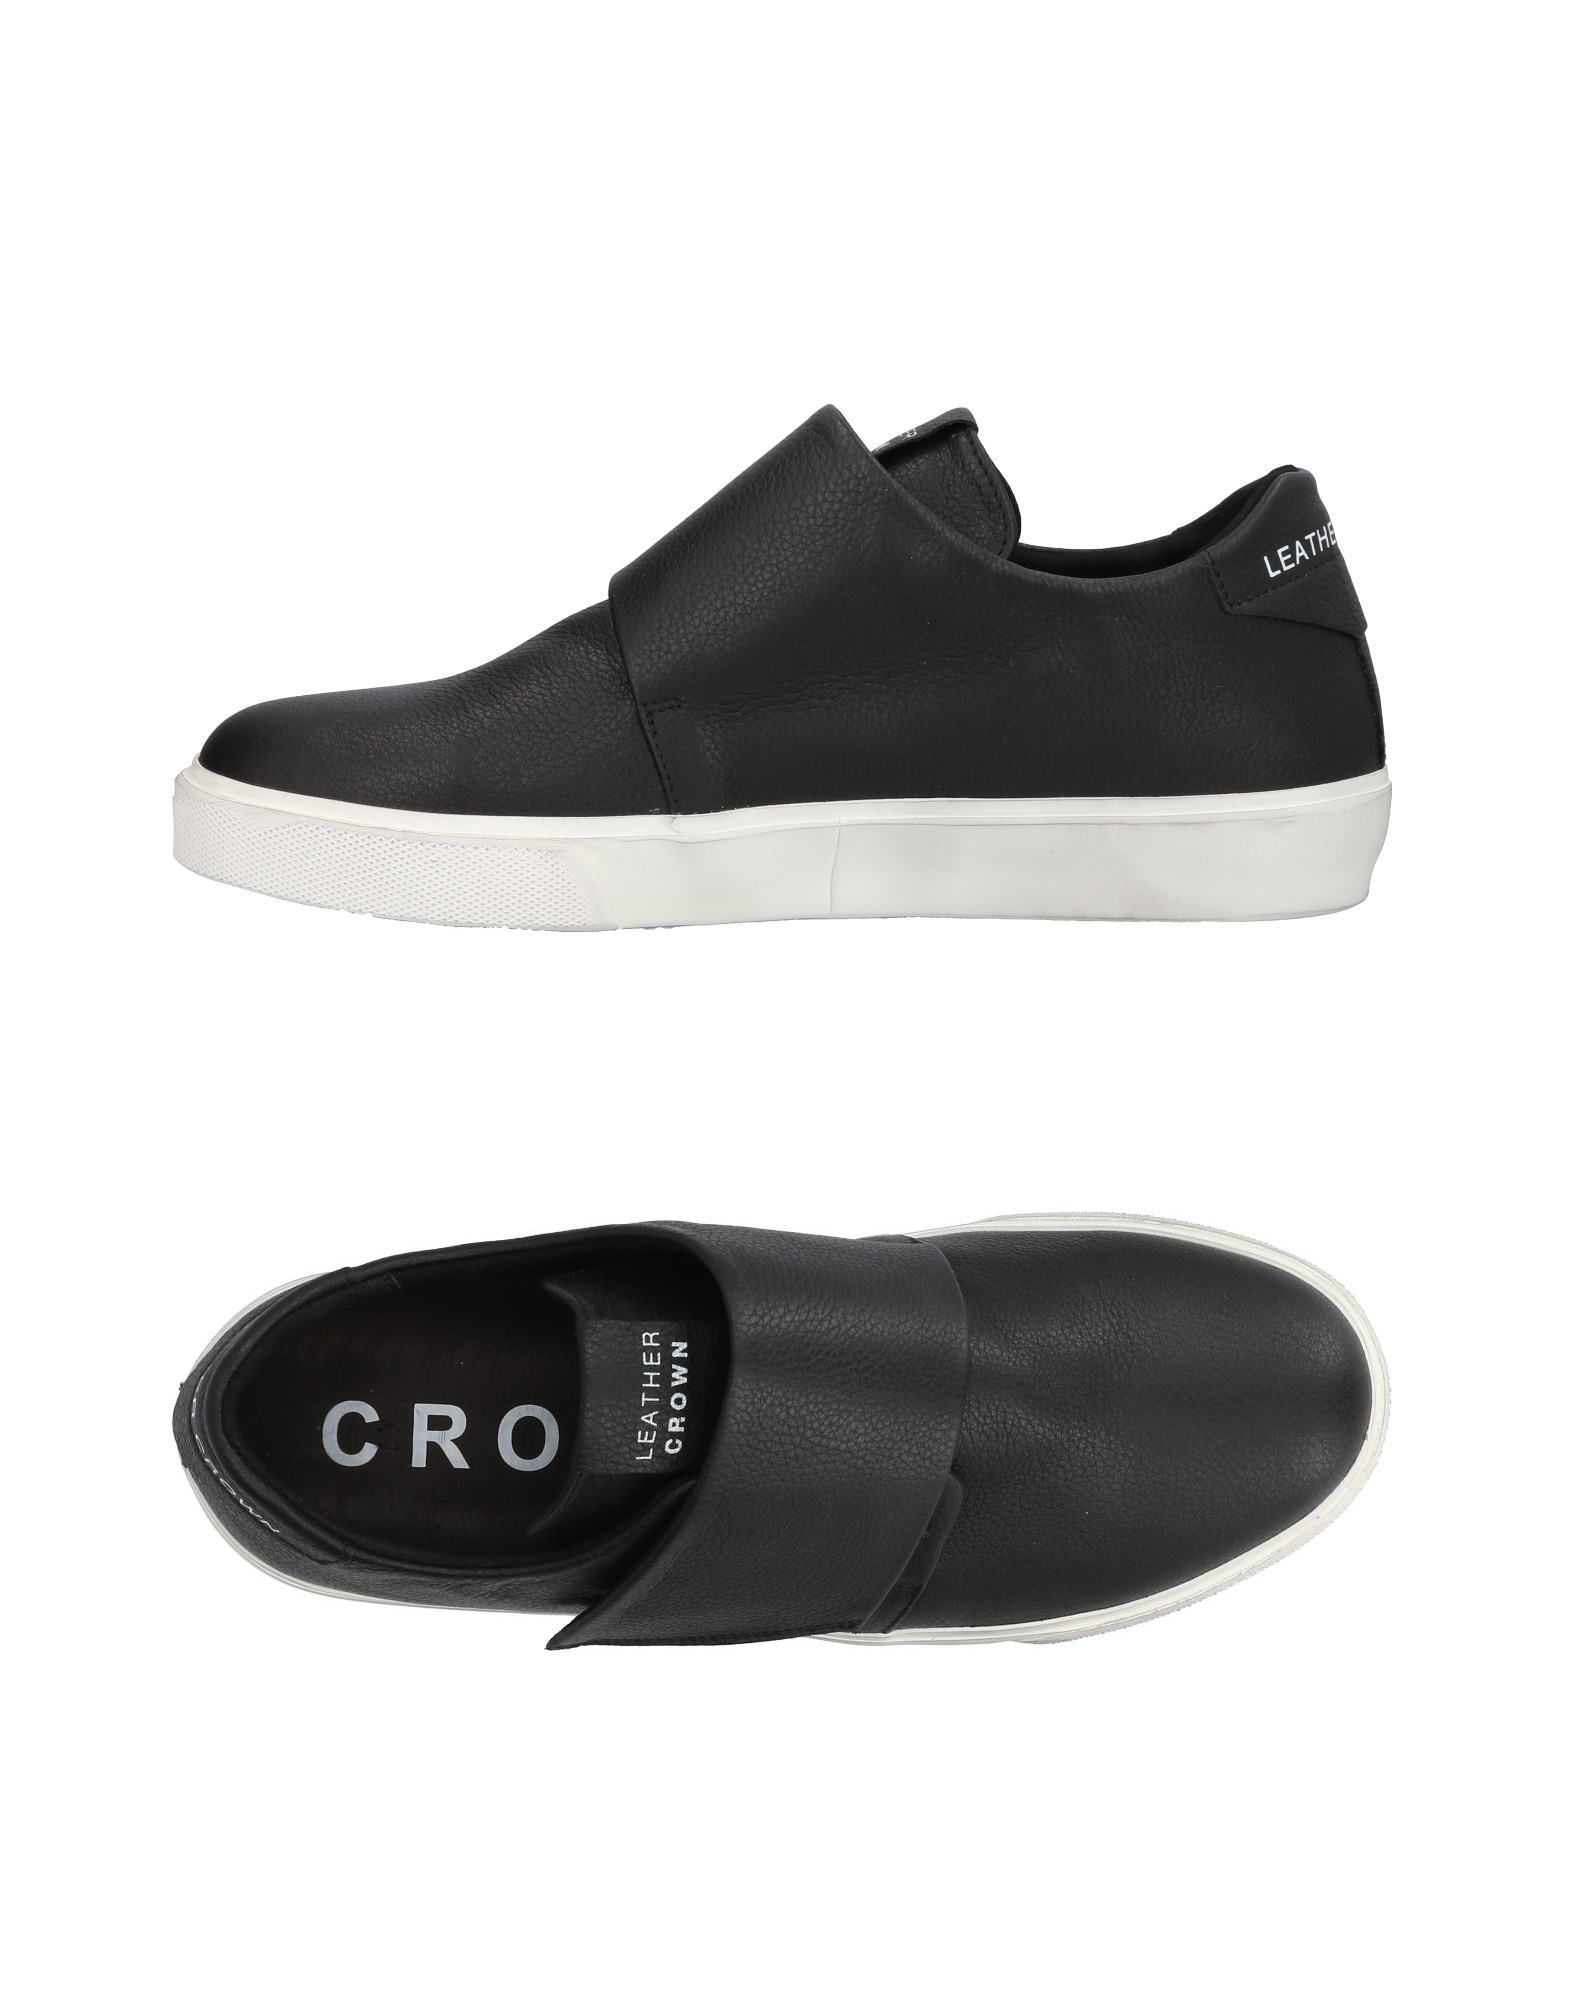 Leather on Crown Sneakers - Men Leather Crown Sneakers online on Leather  Australia - 11453571LT 3f8b85